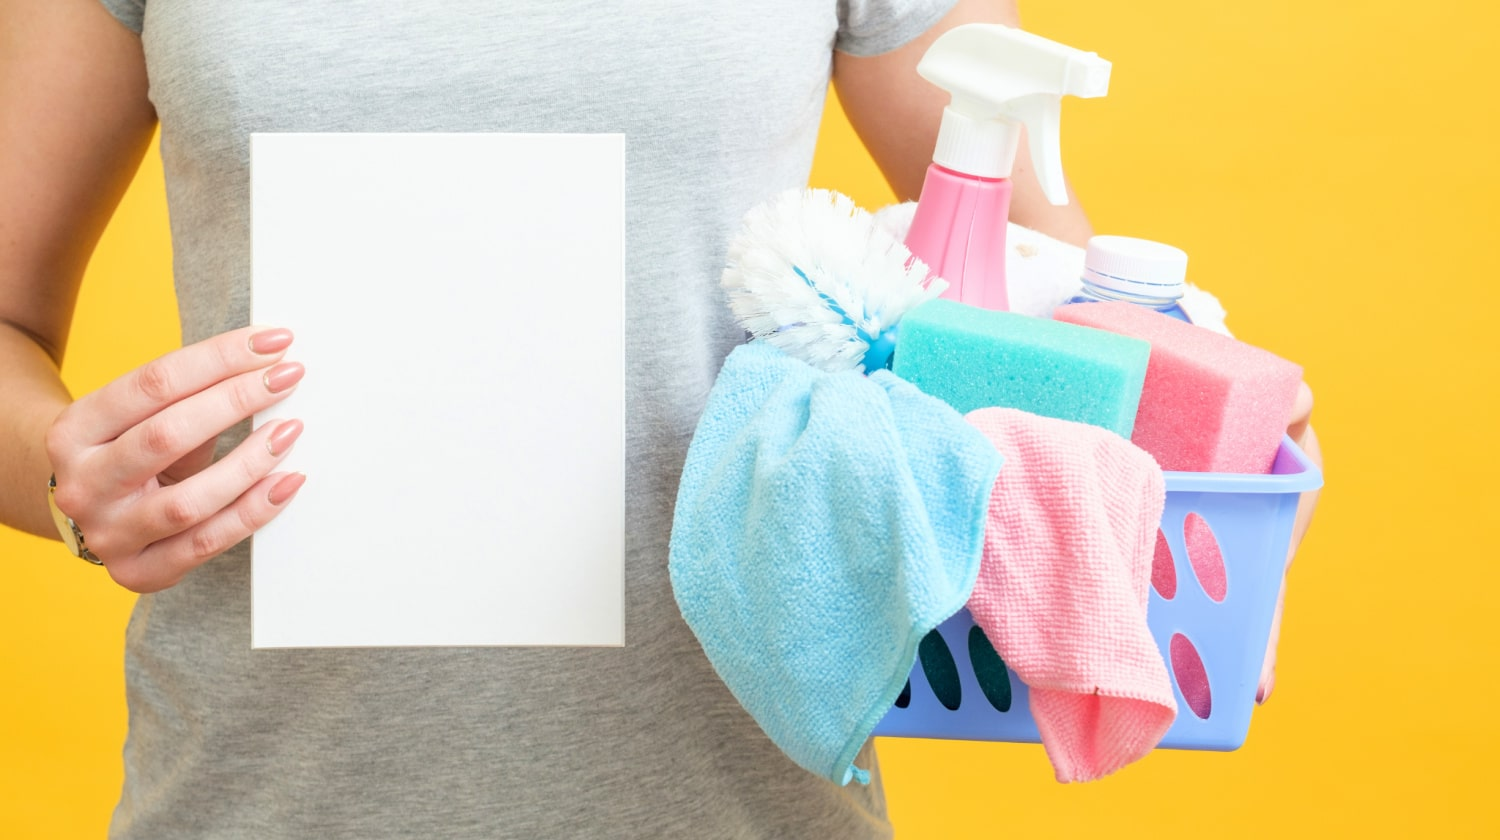 Female holds a basket of cleaning supplies in one hand and a blank sheet of paper in another